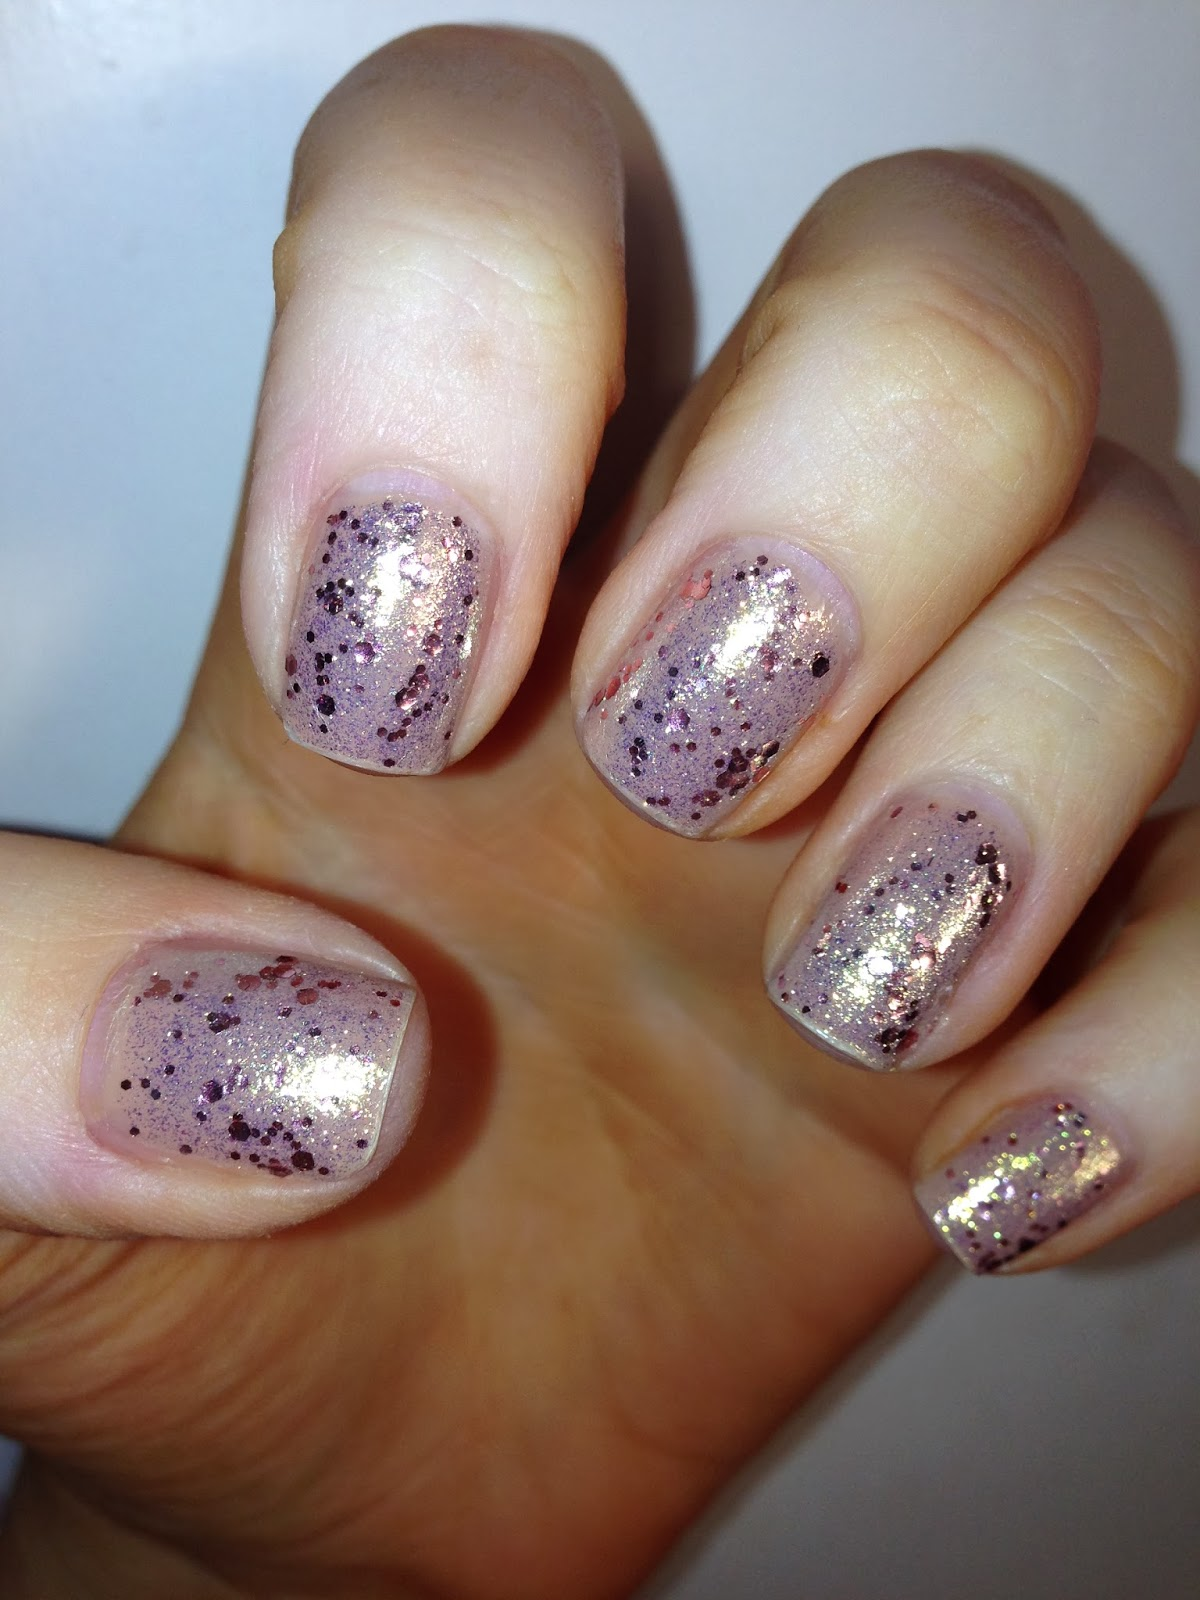 NailsByNumbers: Maybelline Brocade - Knitted Gold - NOTD!